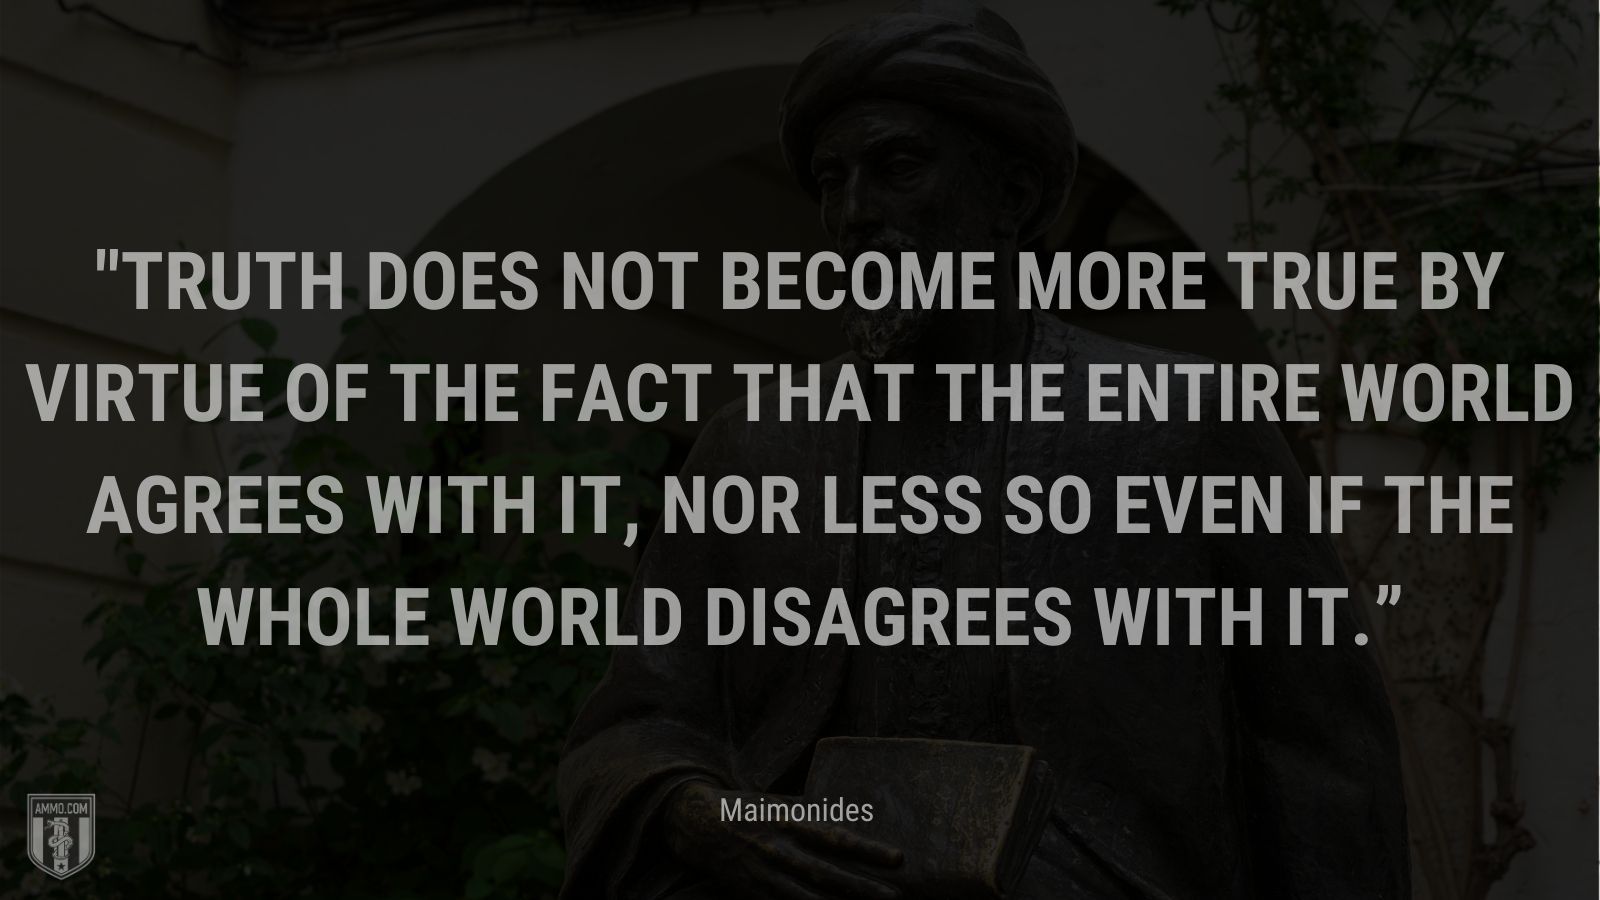 """""""Truth does not become more true by virtue of the fact that the entire world agrees with it, nor less so even if the whole world disagrees with it."""" - Maimonides"""